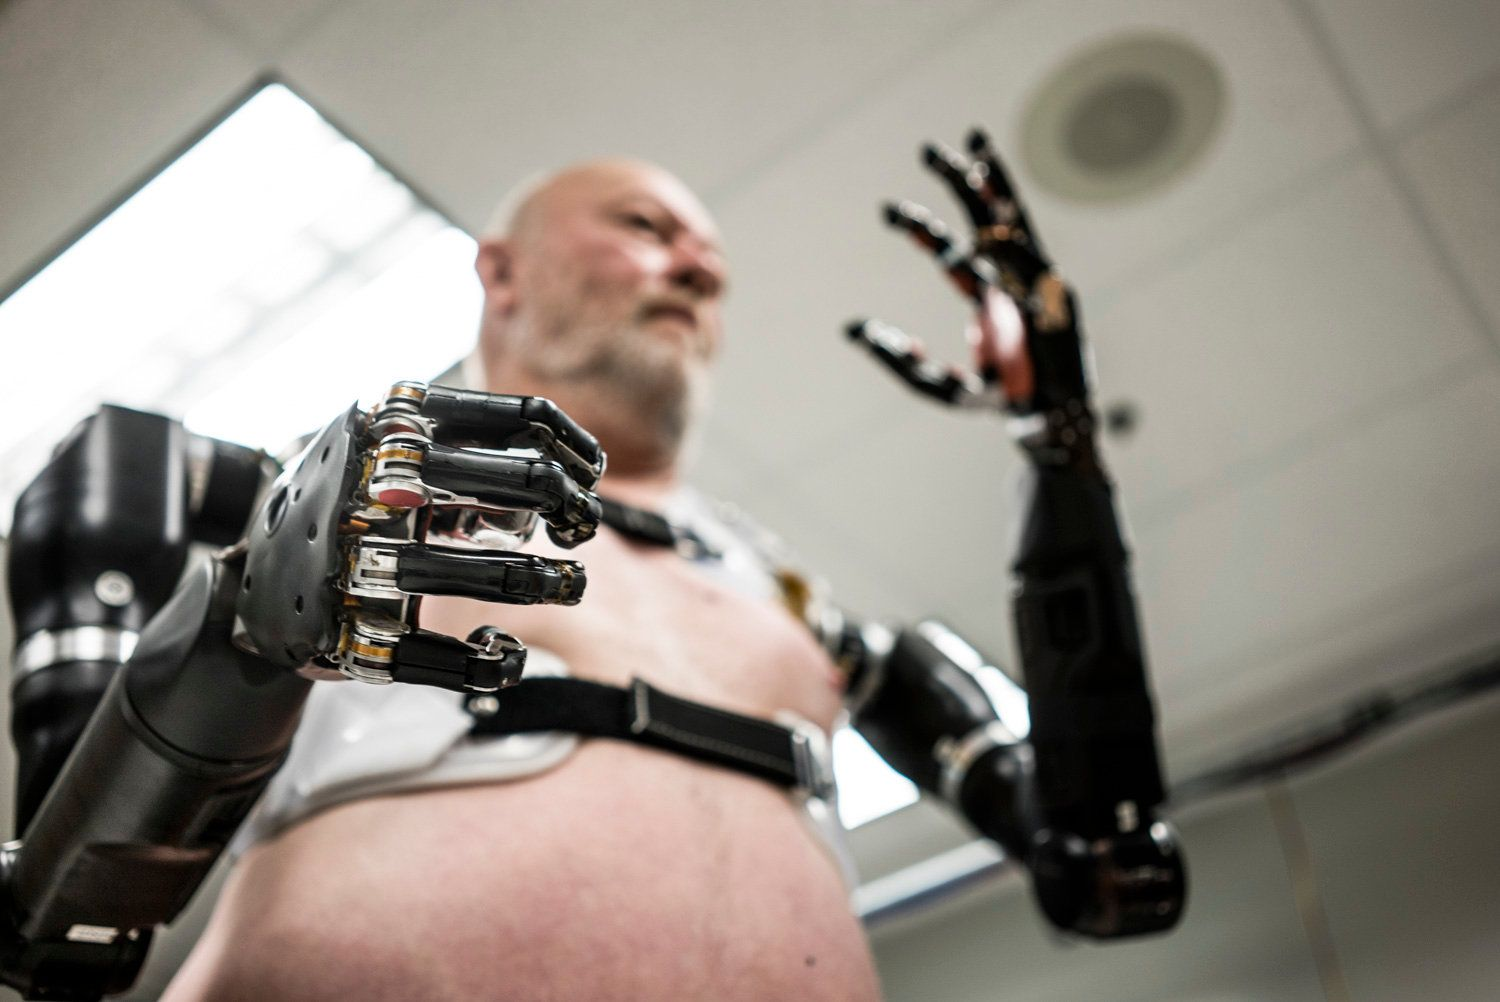 Mind Controlled Prosthetics